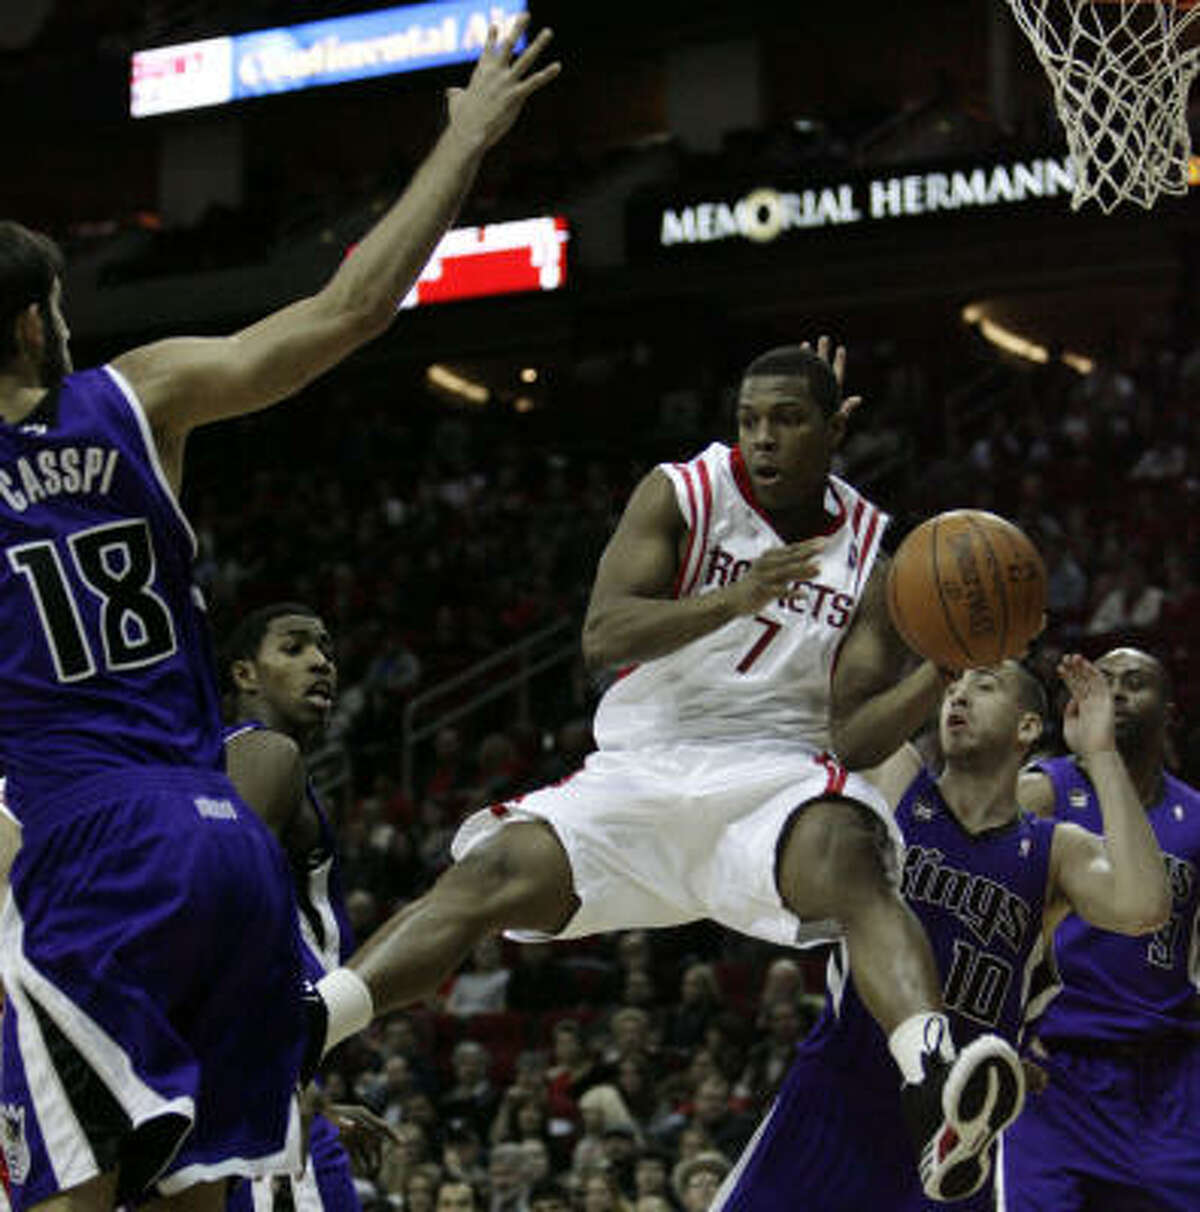 Rockets guard Kyle Lowry (7), who scored 8 points, looks to pass against King defenders during the second half.